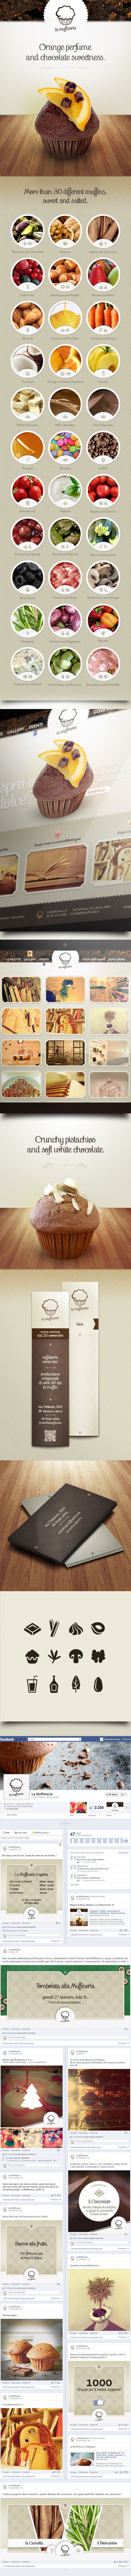 La Muffineria by Alessandro Suraci, via Behance